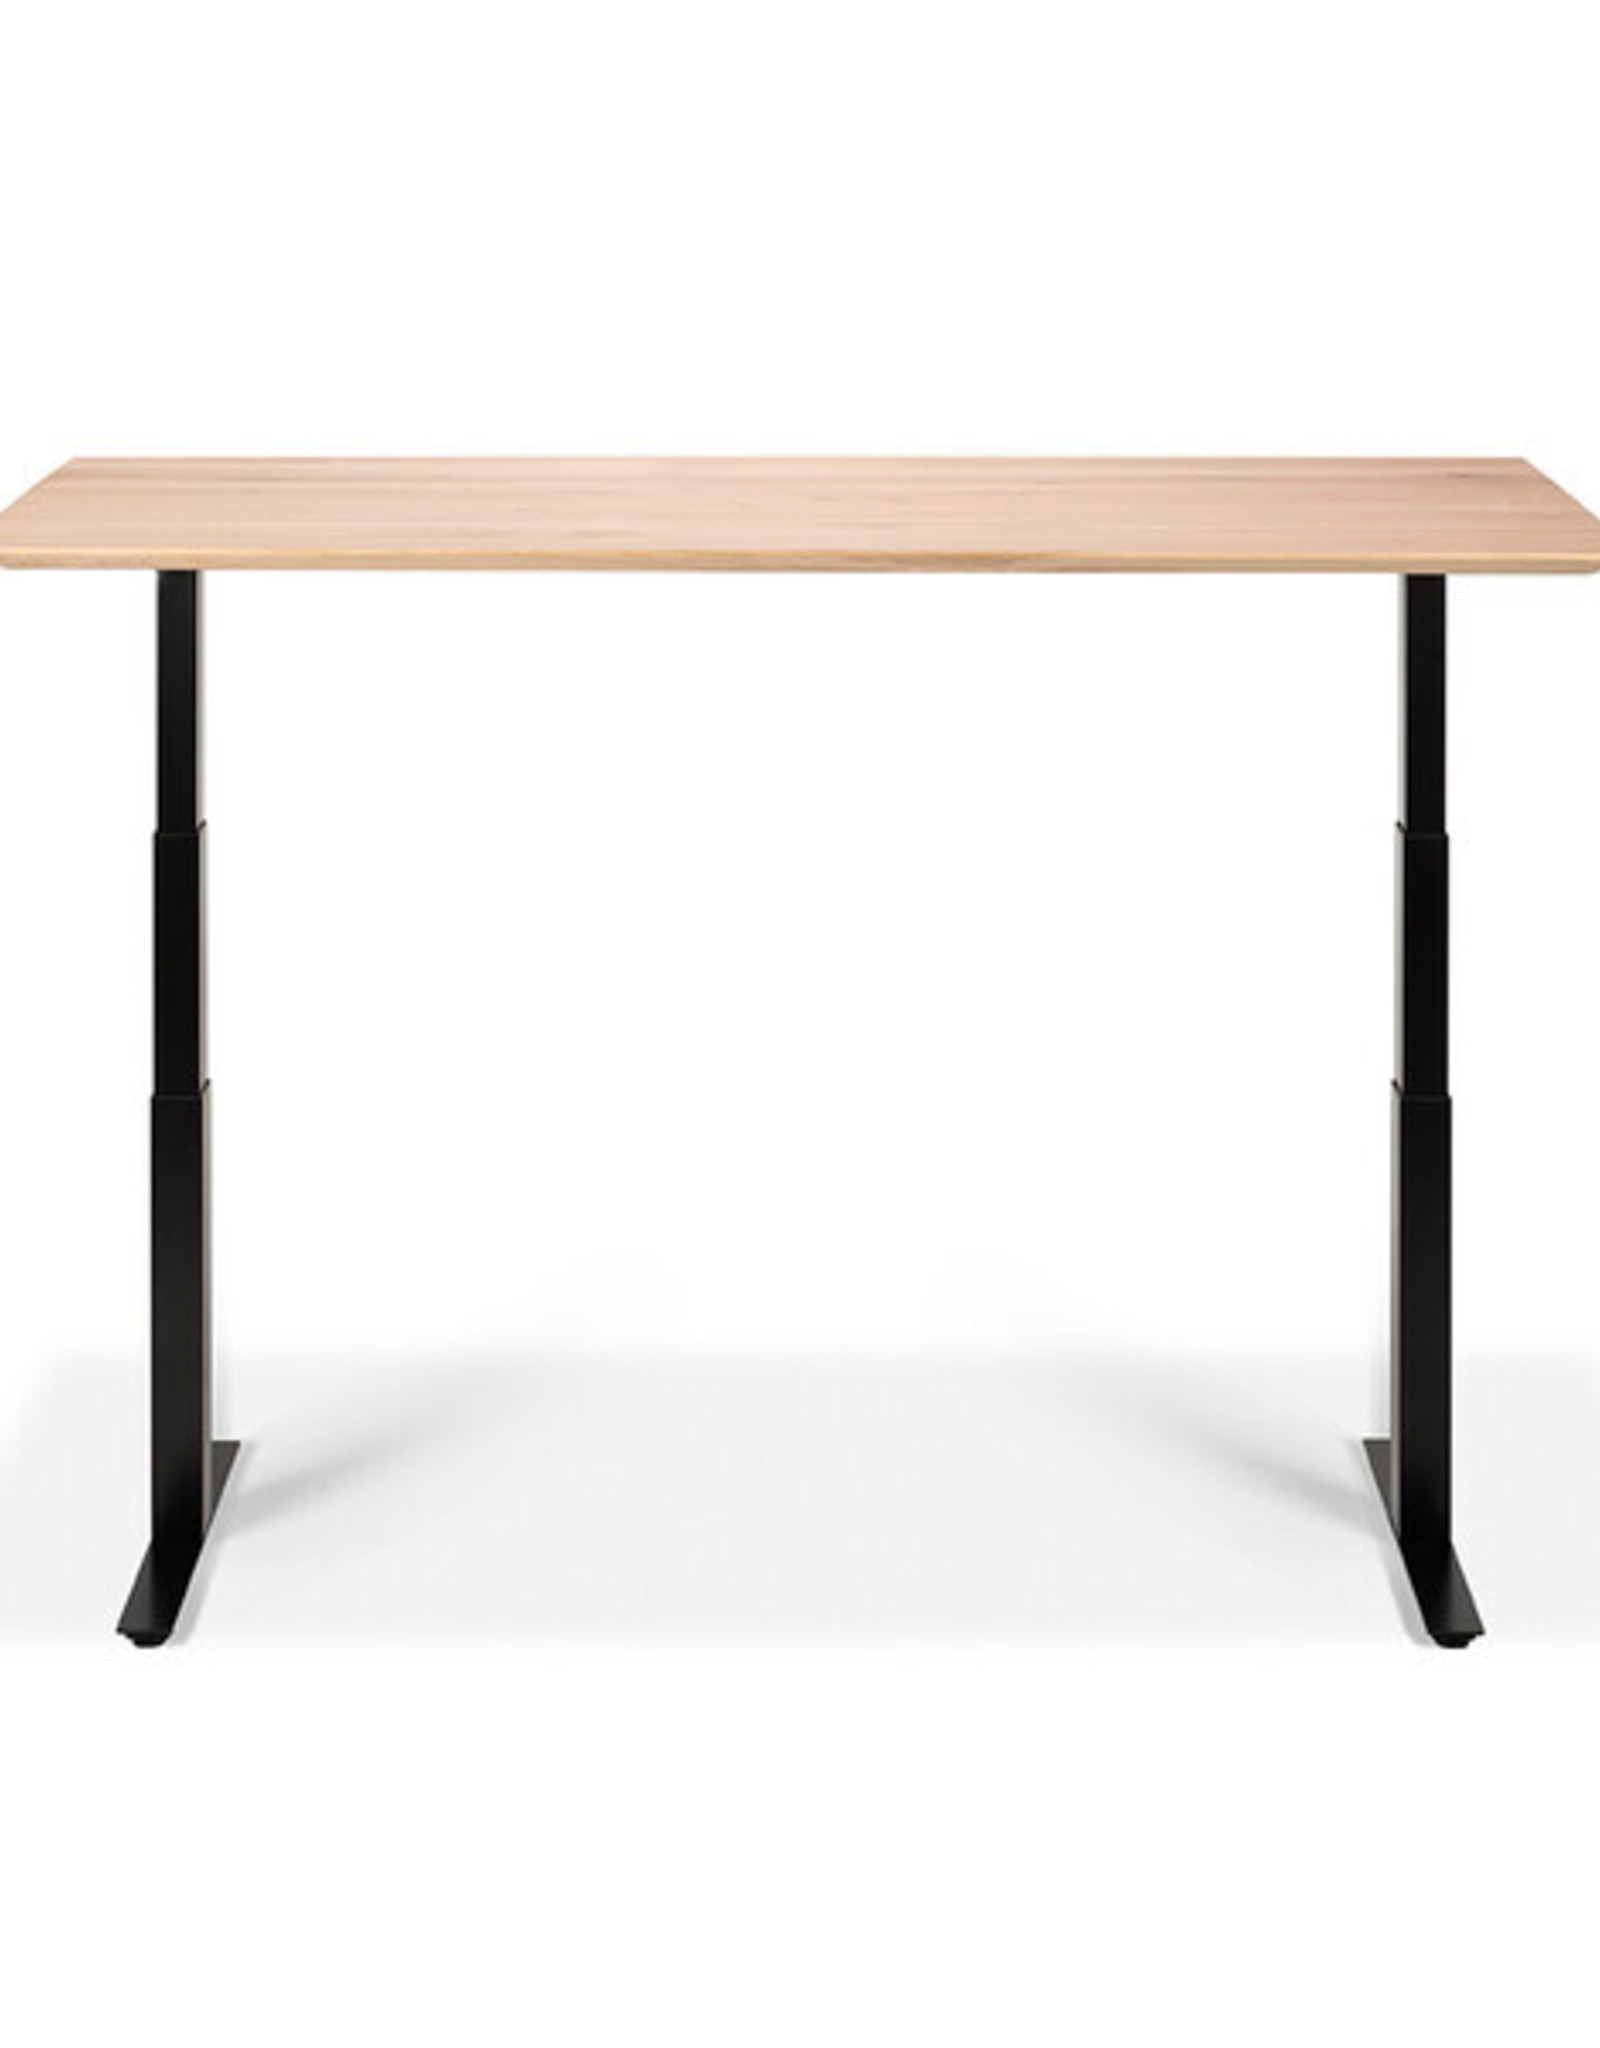 Oak Table Top for Bok Adjustable Desk